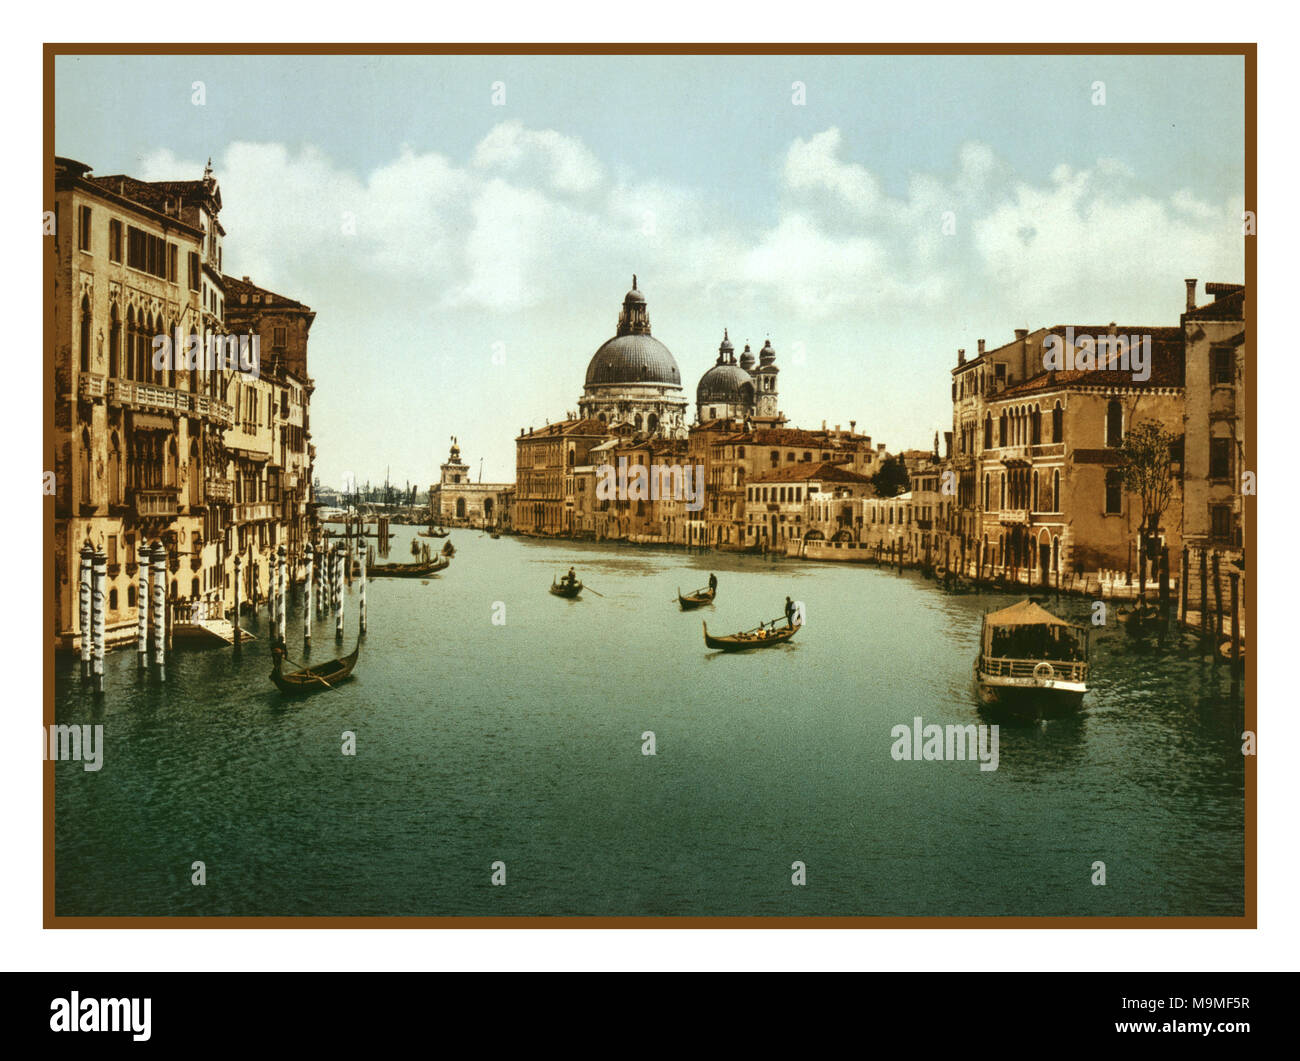 Vintage Old Historic Grand Canal Venice Photochrome 1890-1900's Historic Vintage Old Grand Canal view Venice, Italy. Using post colouring technique via transfer onto lithographic printing plates from Black and White negative images. - Stock Image